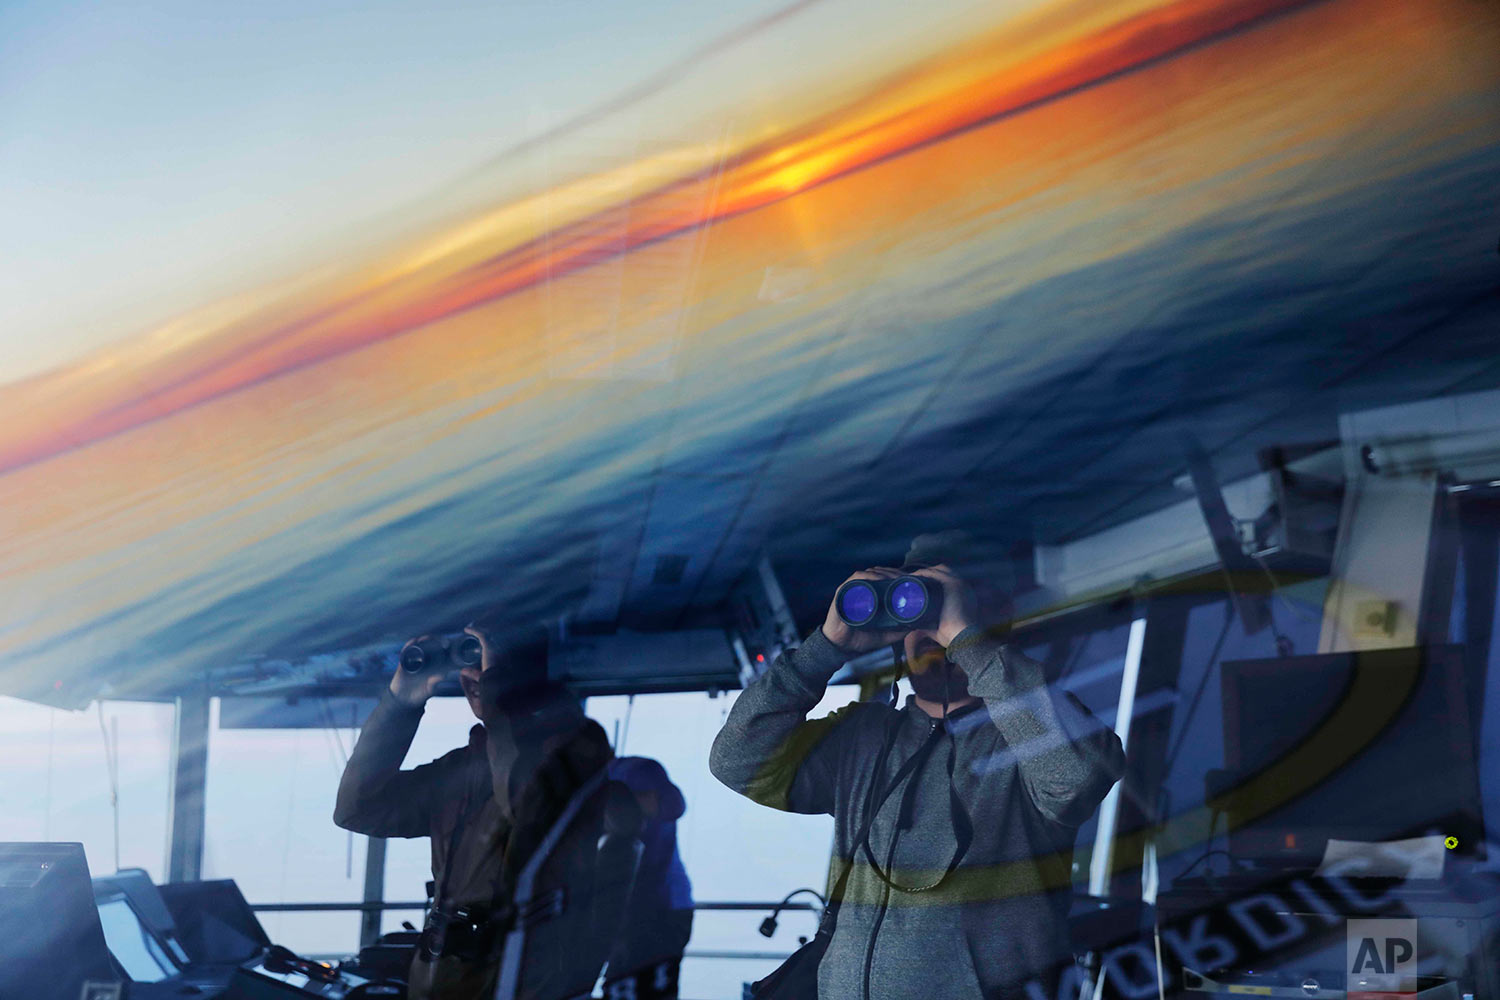 Researchers look toward the midnight sun while approaching the American island of Little Diomede, Alaska, and the Russian island of Big Diomede, as the Finnish icebreaker MSV Nordica sails along the international date line through the Bering Strait, Friday, July 14, 2017. The international date line is an imaginary border that runs through the middle of the Pacific Ocean and marks the boundary between calendar dates, effectively making it the zero-line for the planet's time zones. (AP Photo/David Goldman)